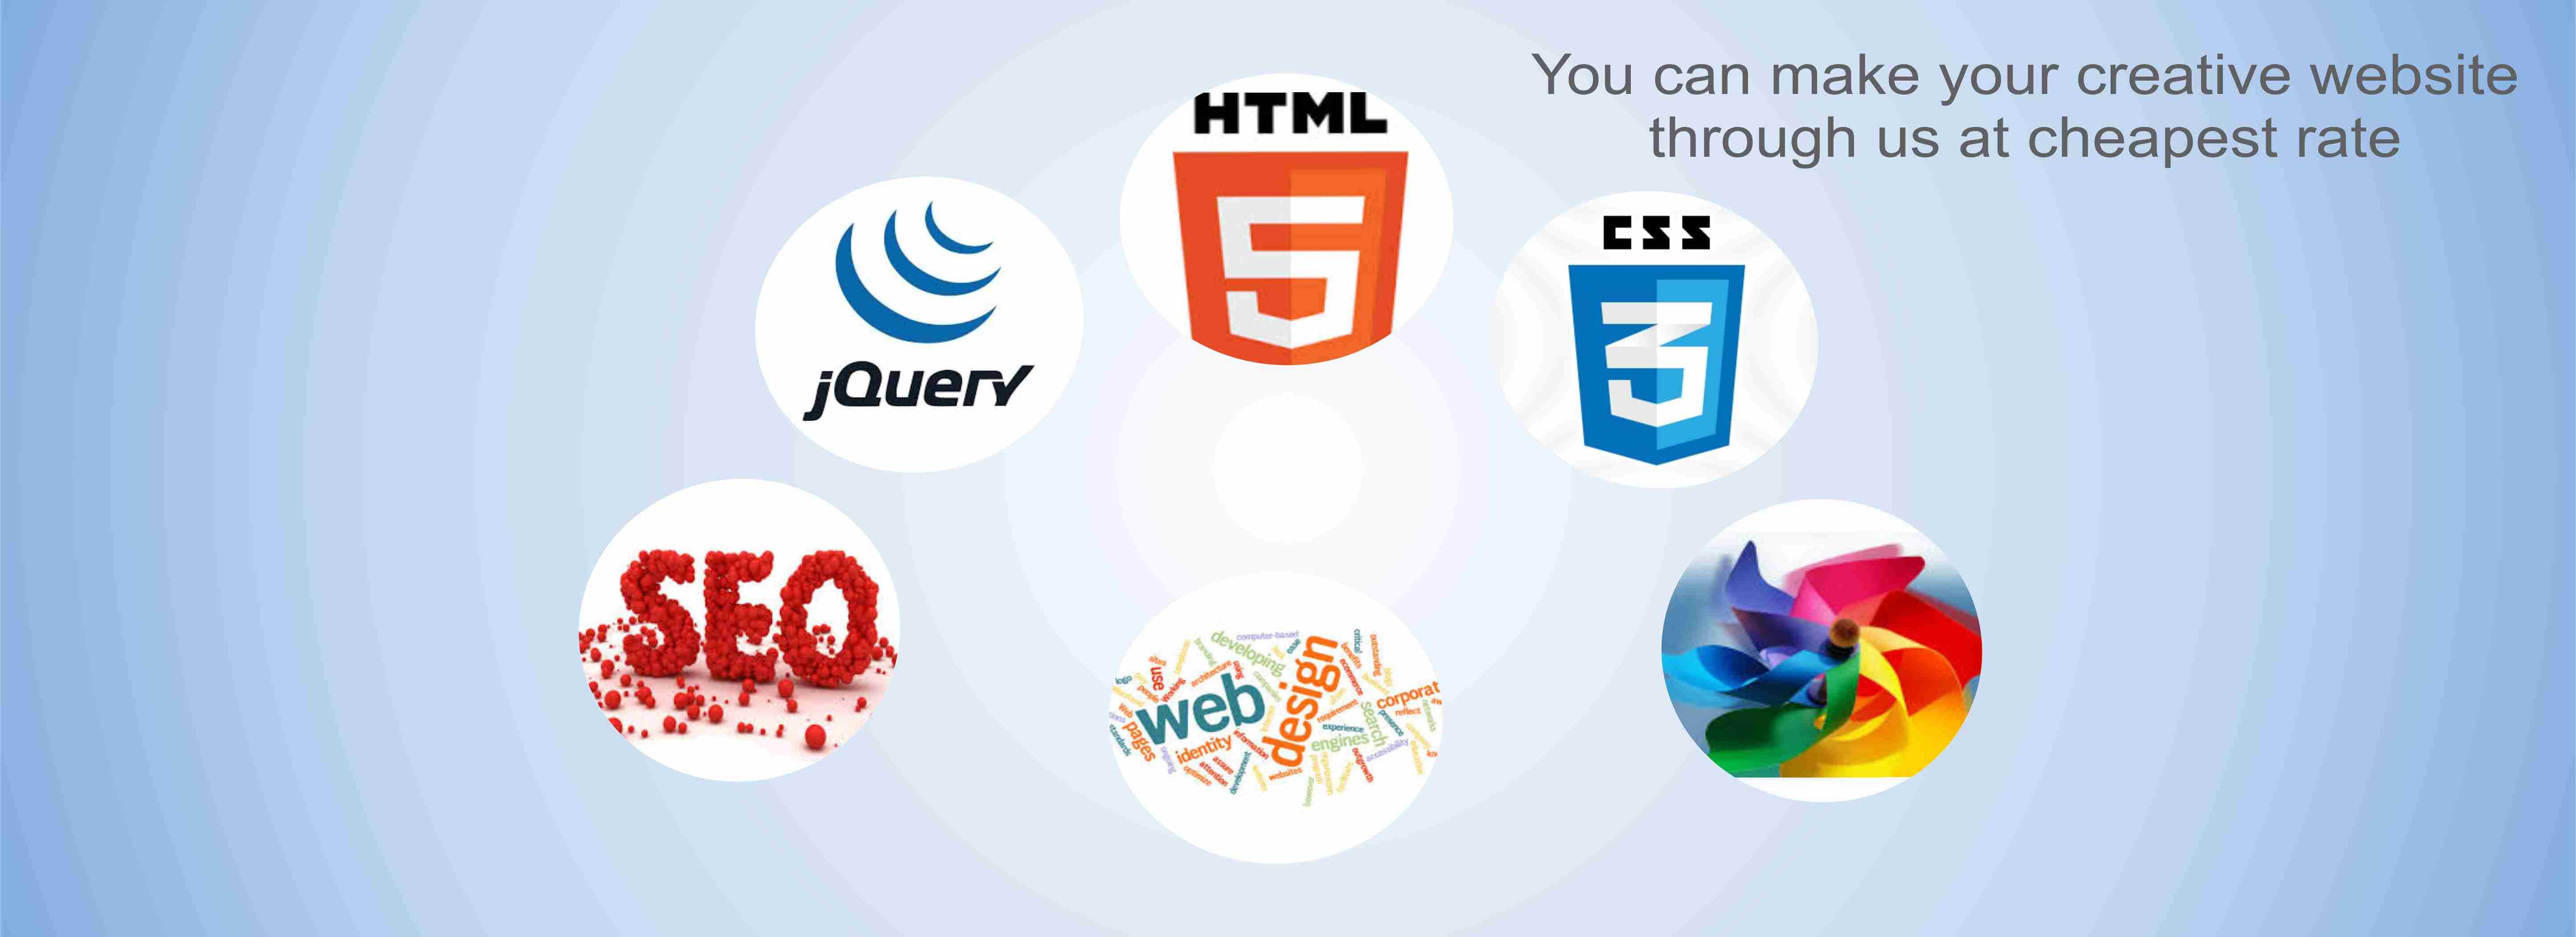 Softwaretoday is a software development, E-Commerce Development company situated in Mumbai India